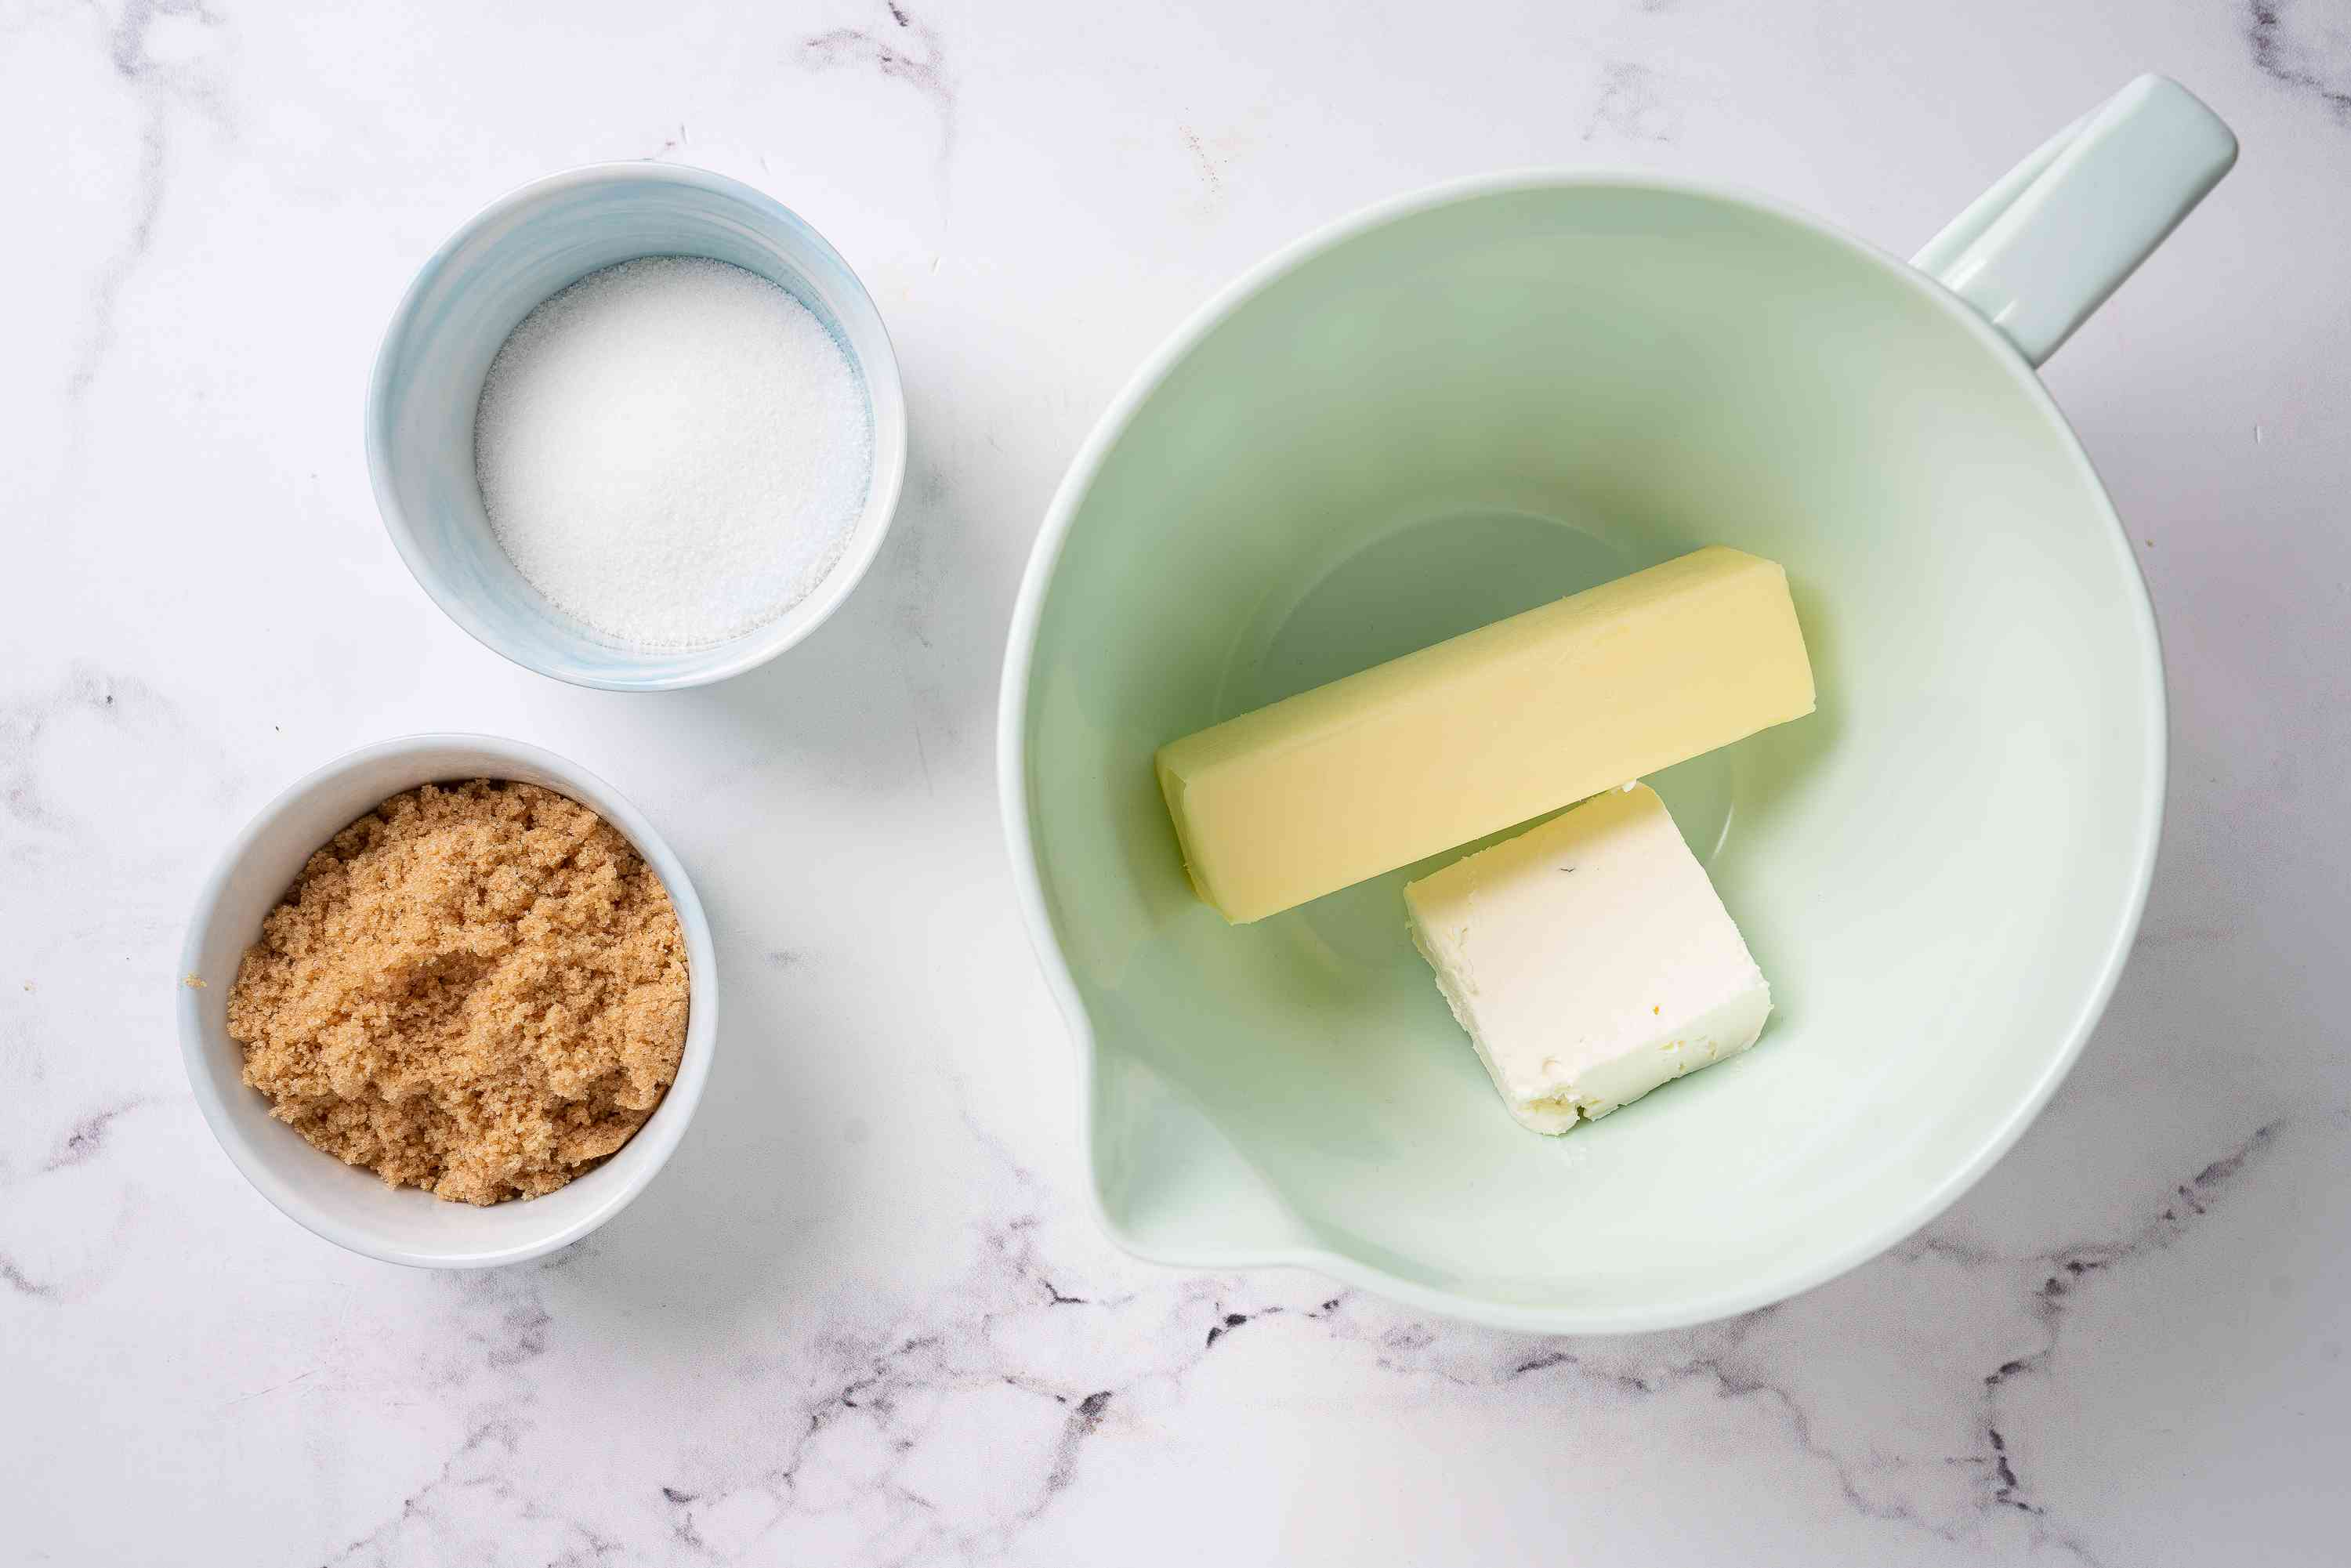 Cream cheese and butter in a bowl